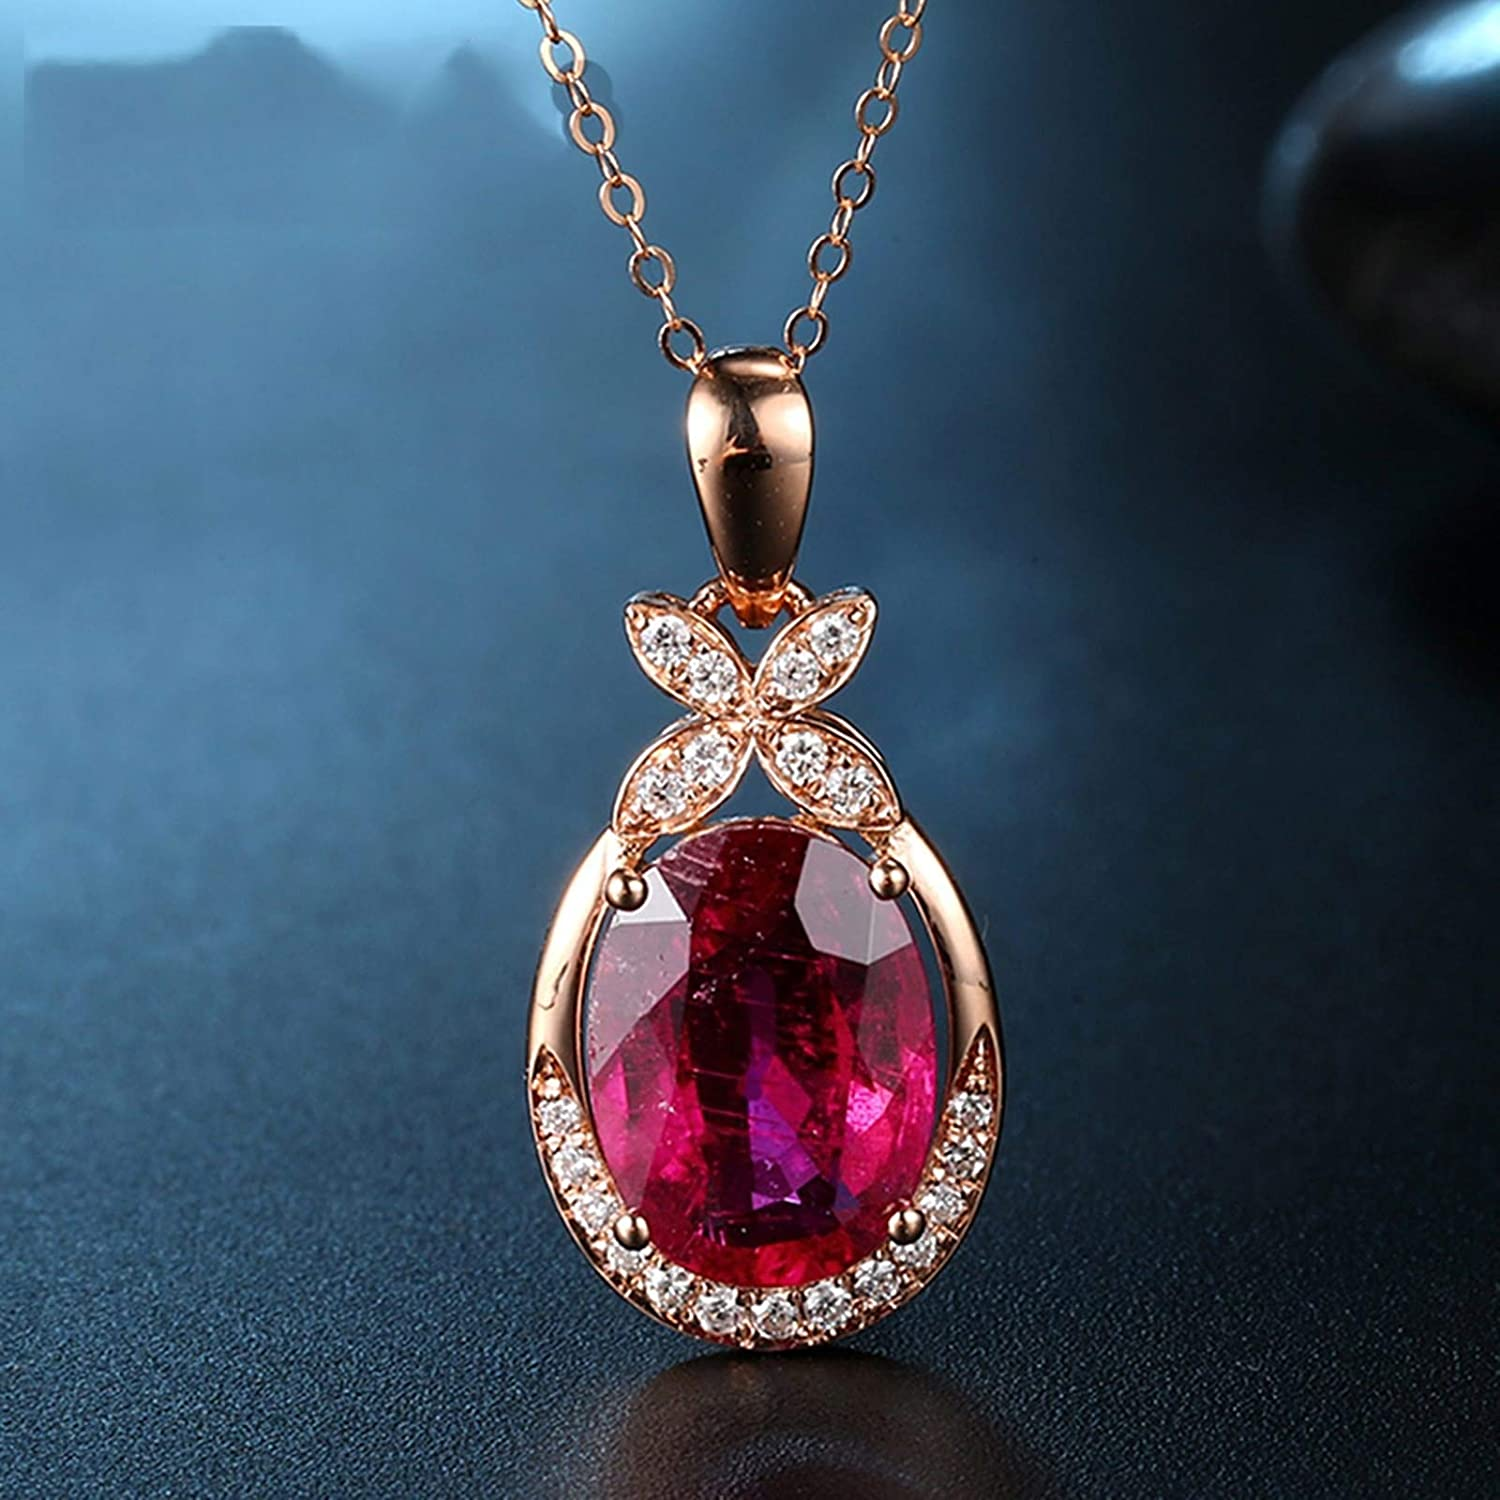 Daesar Sterling Silver Womens Necklace Eternal Love Teardrop Inlaid Crystal Red Pendant Necklace